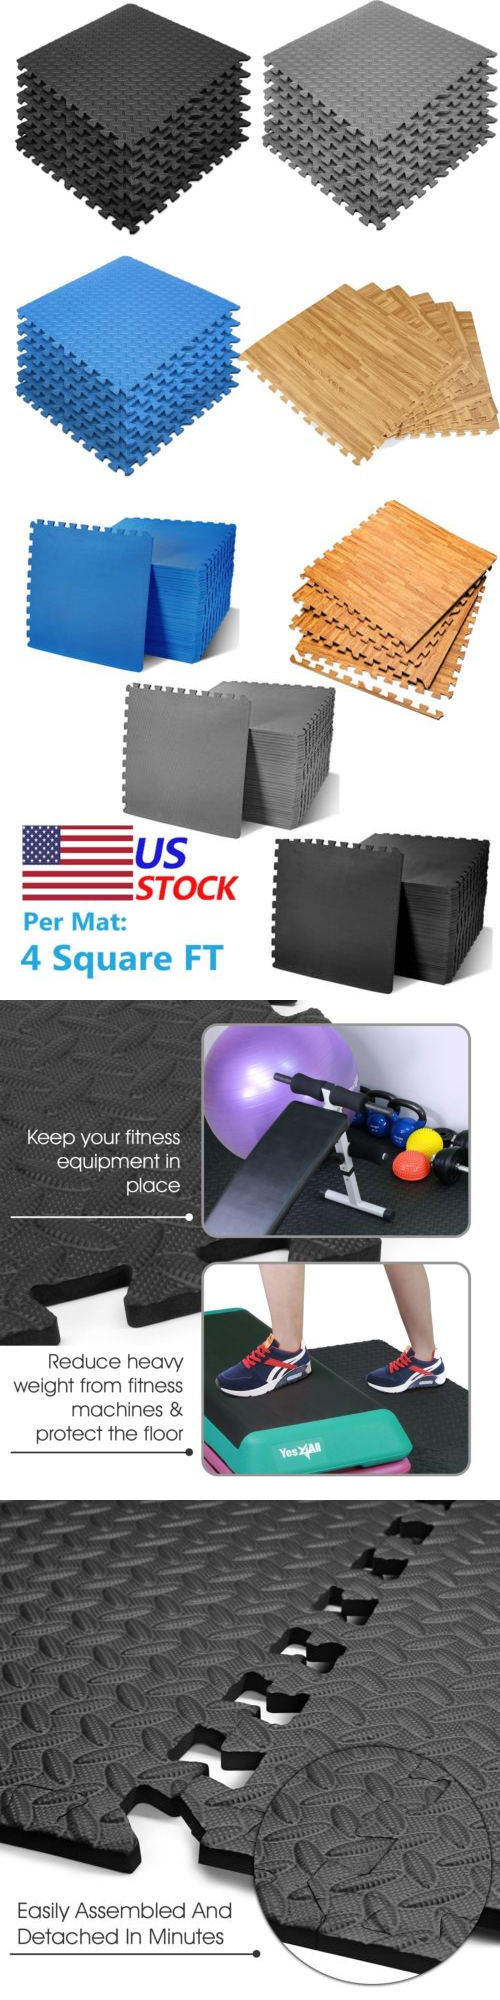 Exercise Mats 44079: Lot 24-1200 Sq Ft Interlocking Eva Foam Floor Puzzle Work Gym Mats Puzzle Mat -> BUY IT NOW ONLY: $569.95 on eBay!